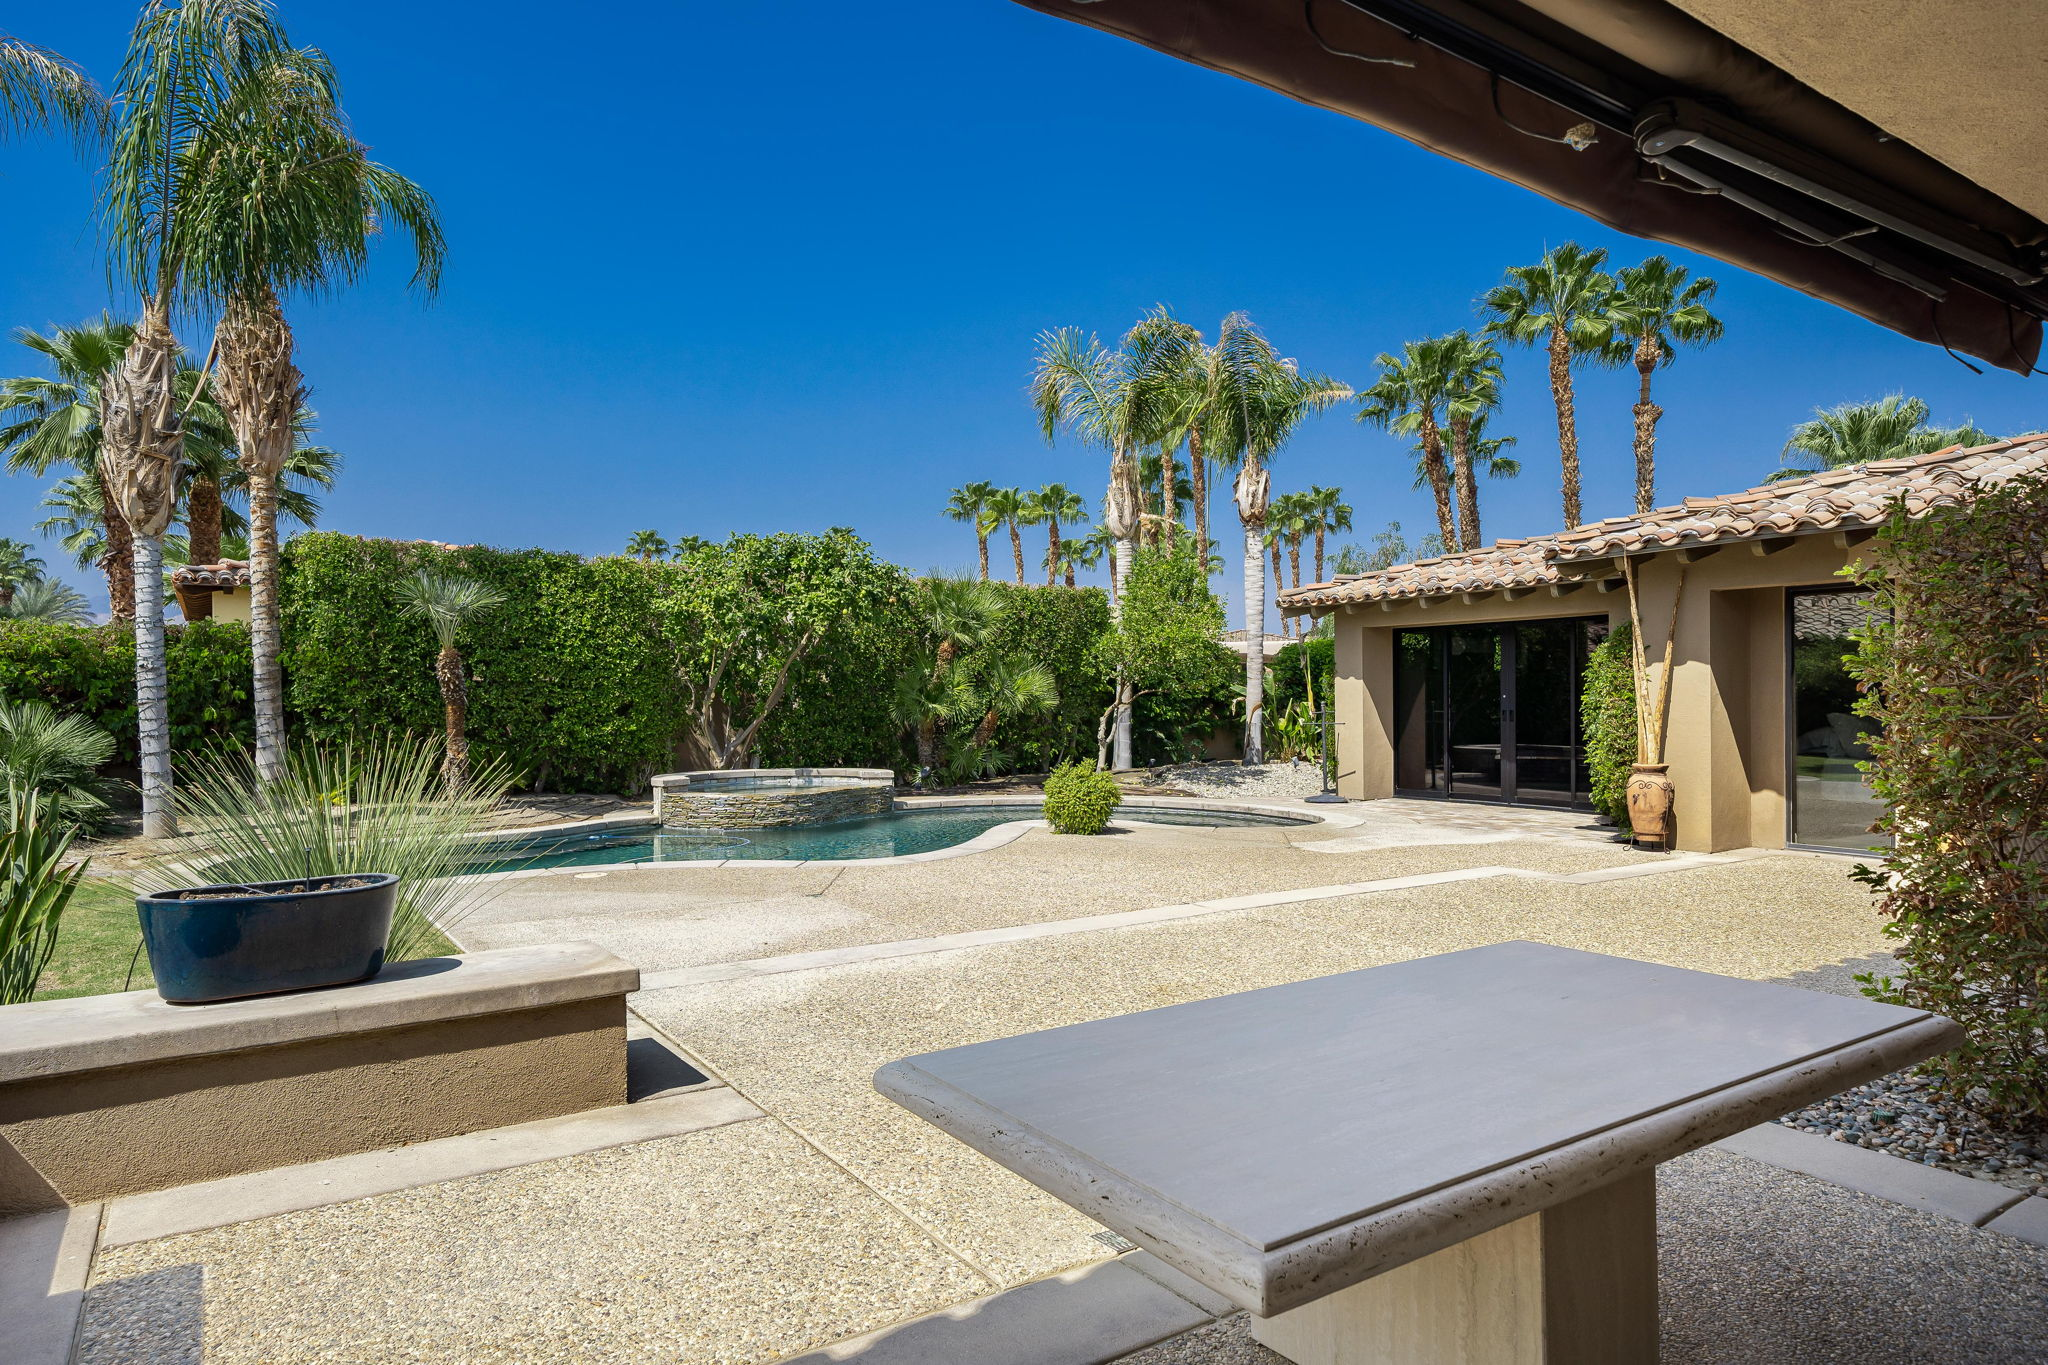 Covered Patio west with Pool/Spa